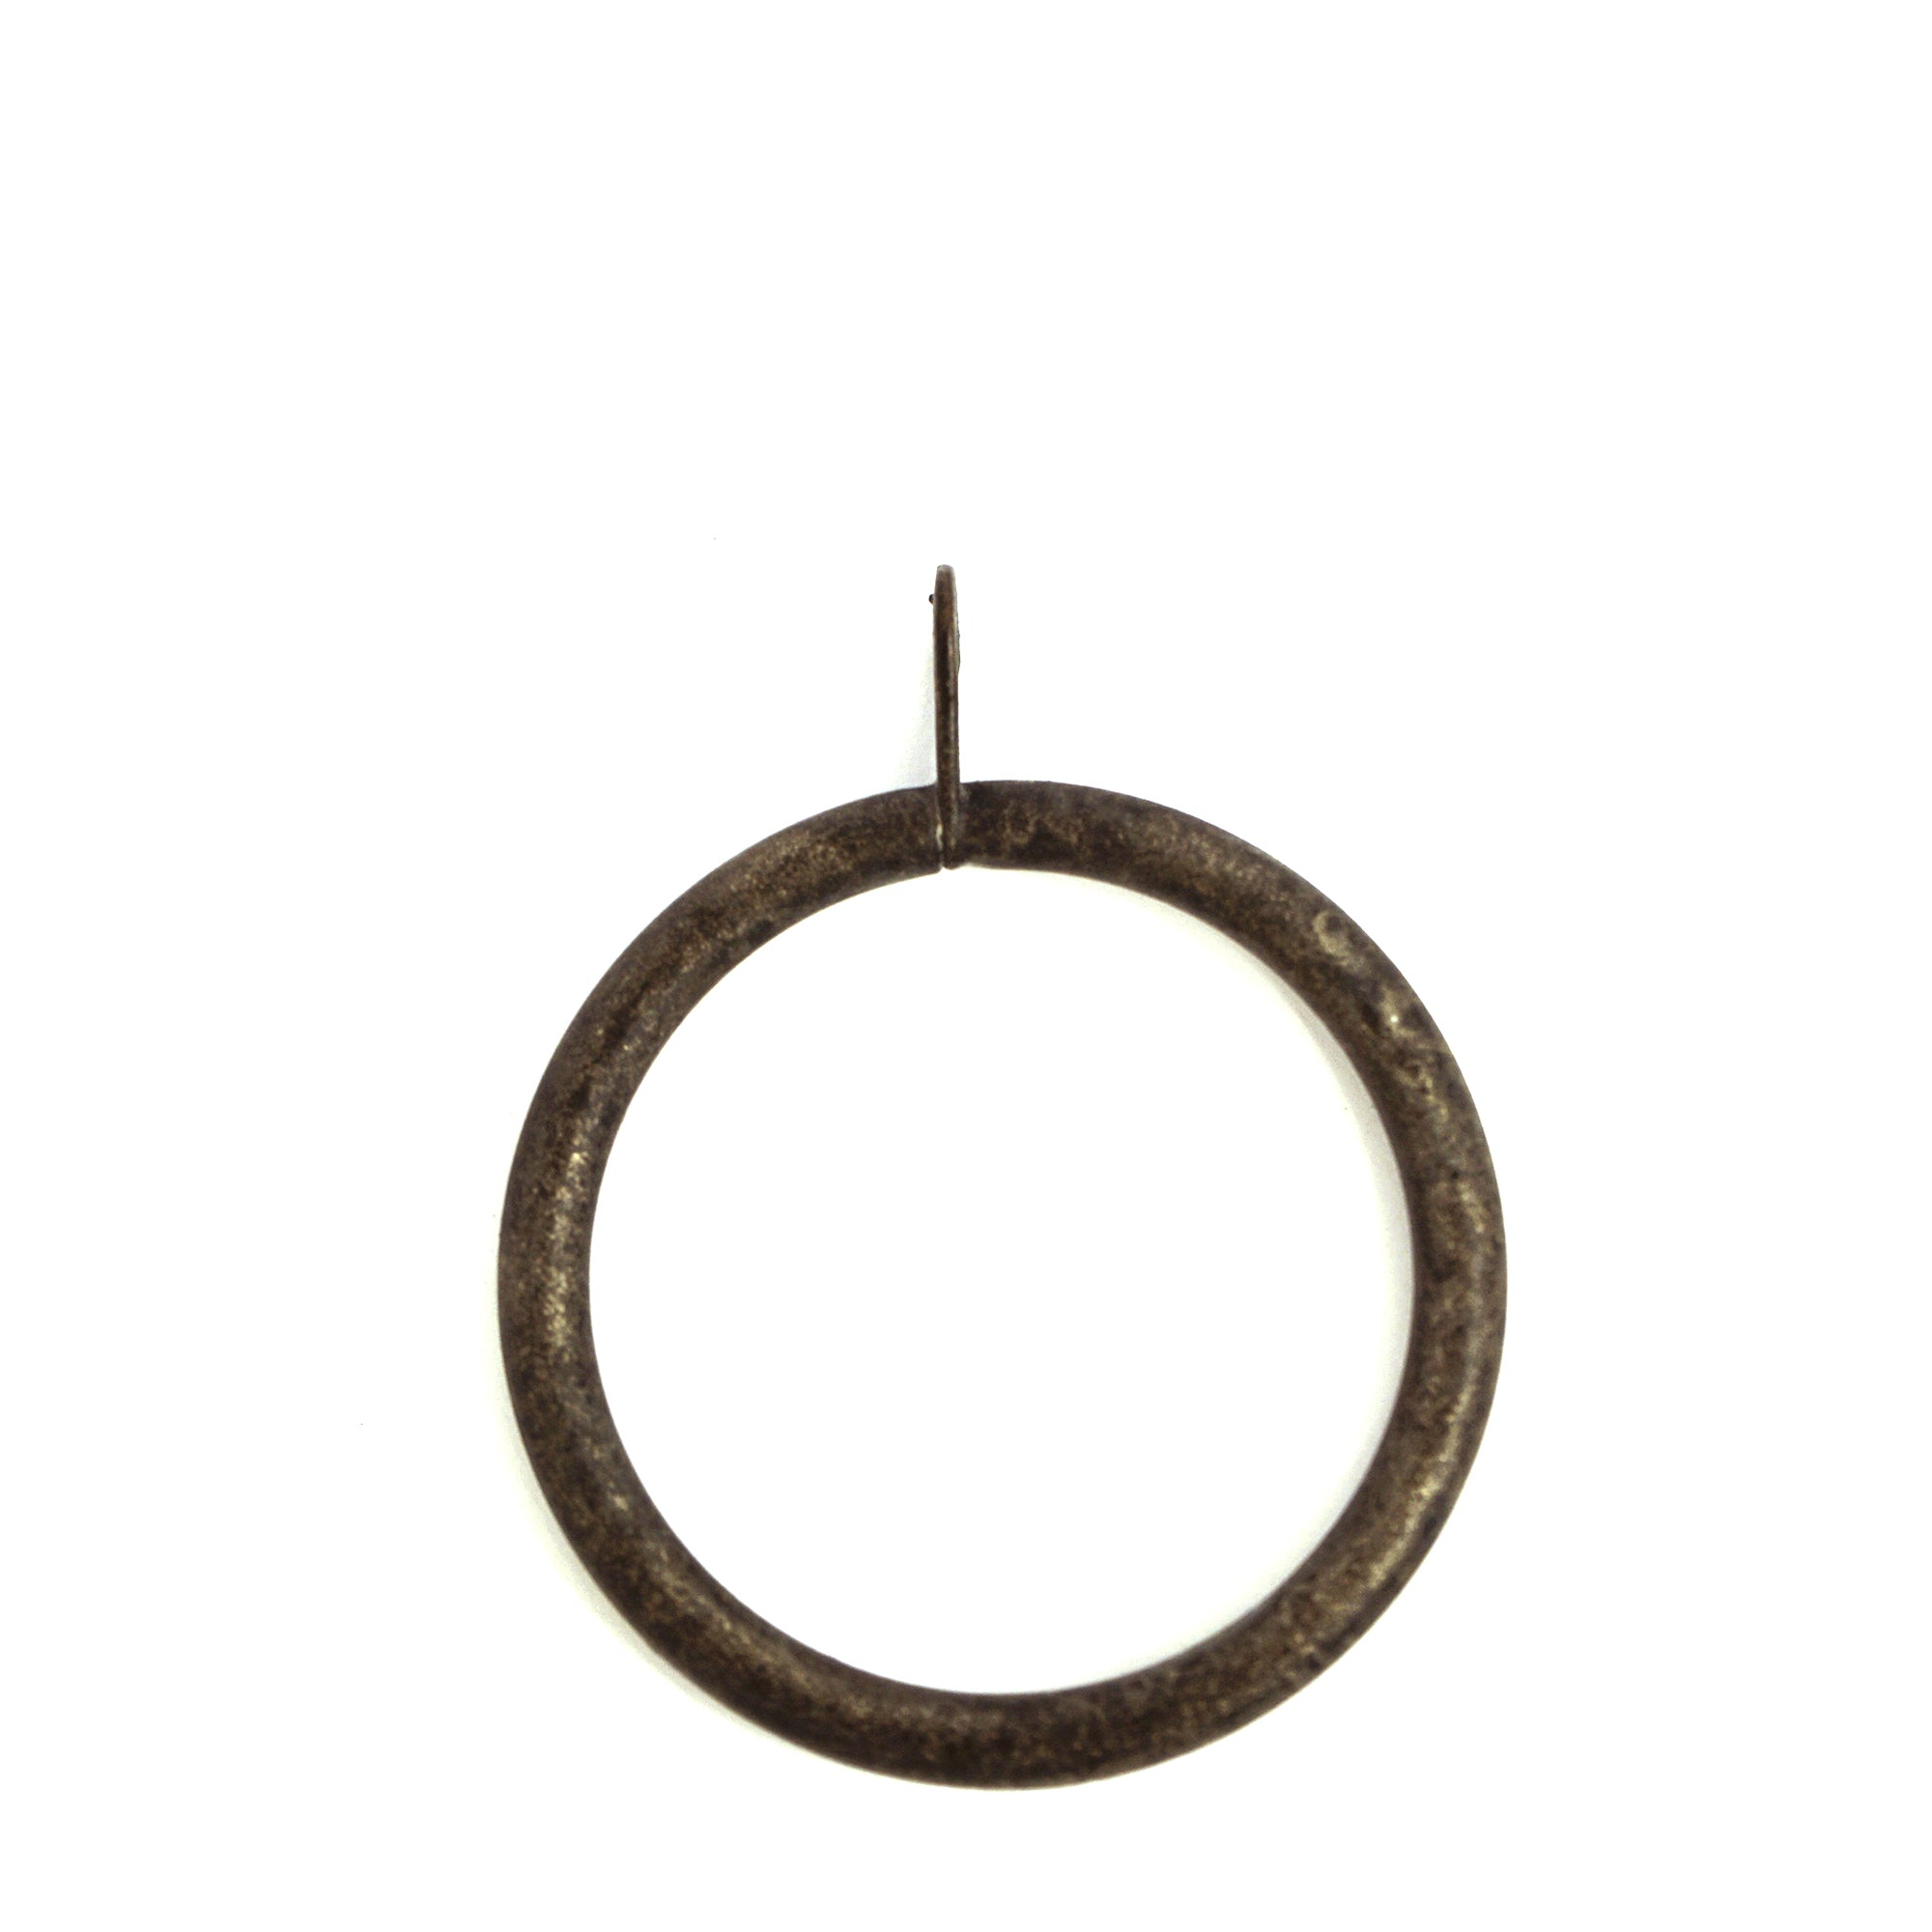 Metal Rings - Tarnished Metal